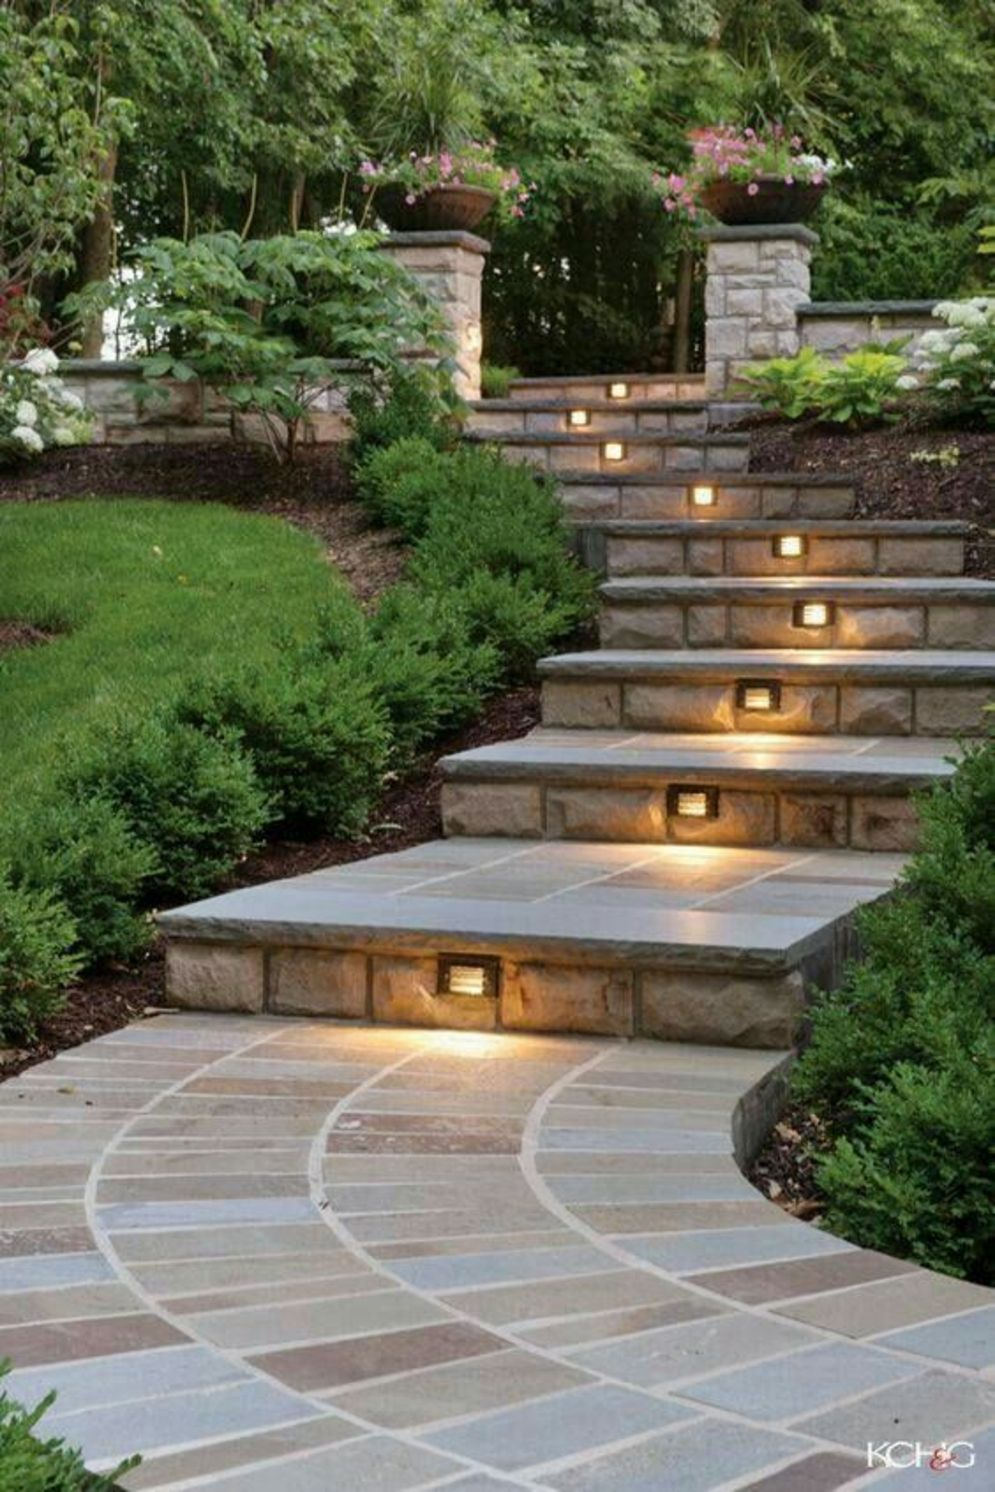 Beautiful garden lighting ideas with ground level ambient light giving luxurious resorts look Image 30